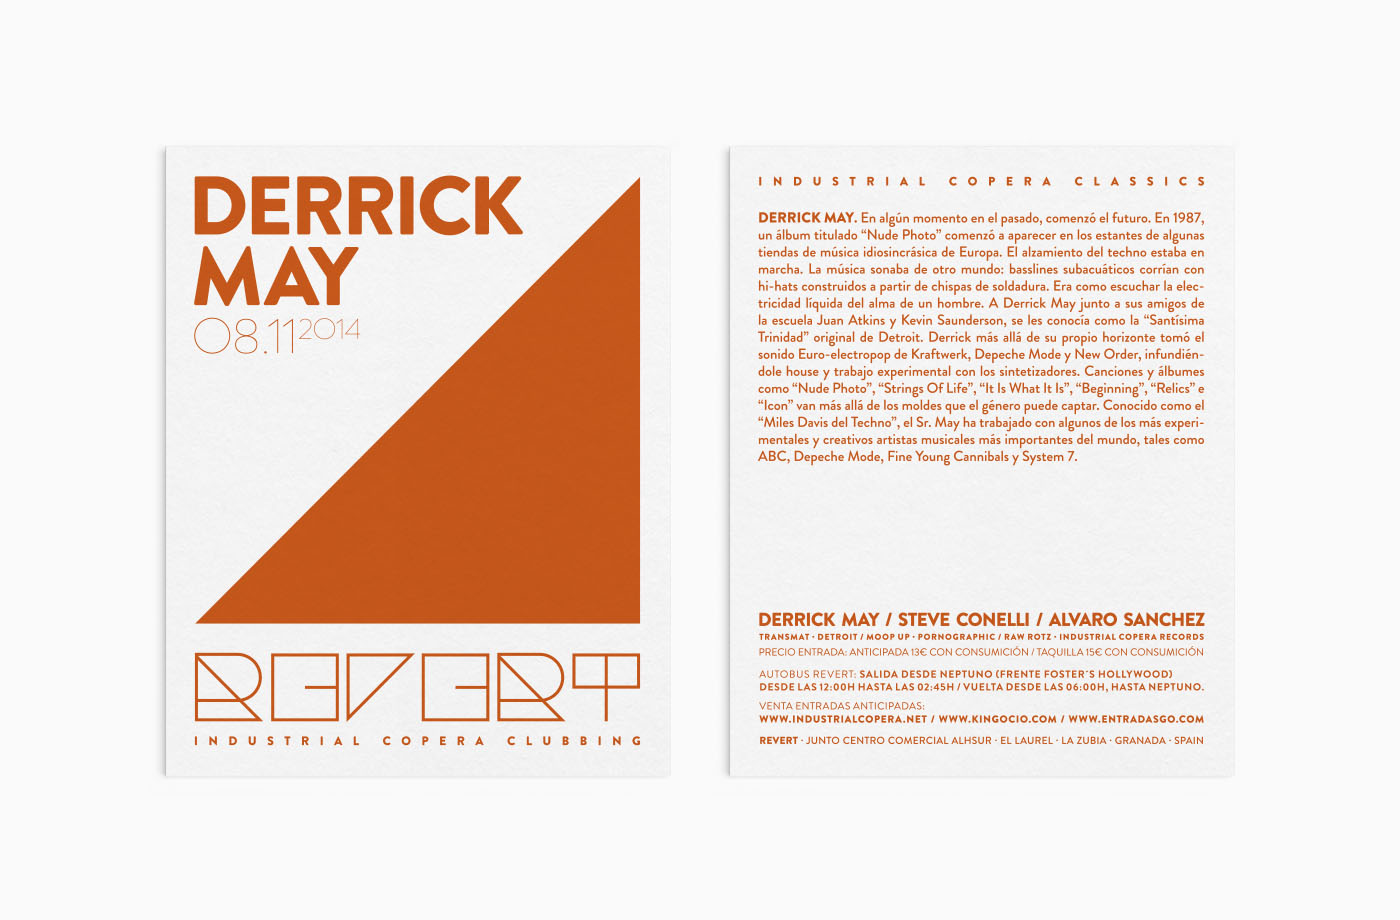 revert-flyer-derrick-may